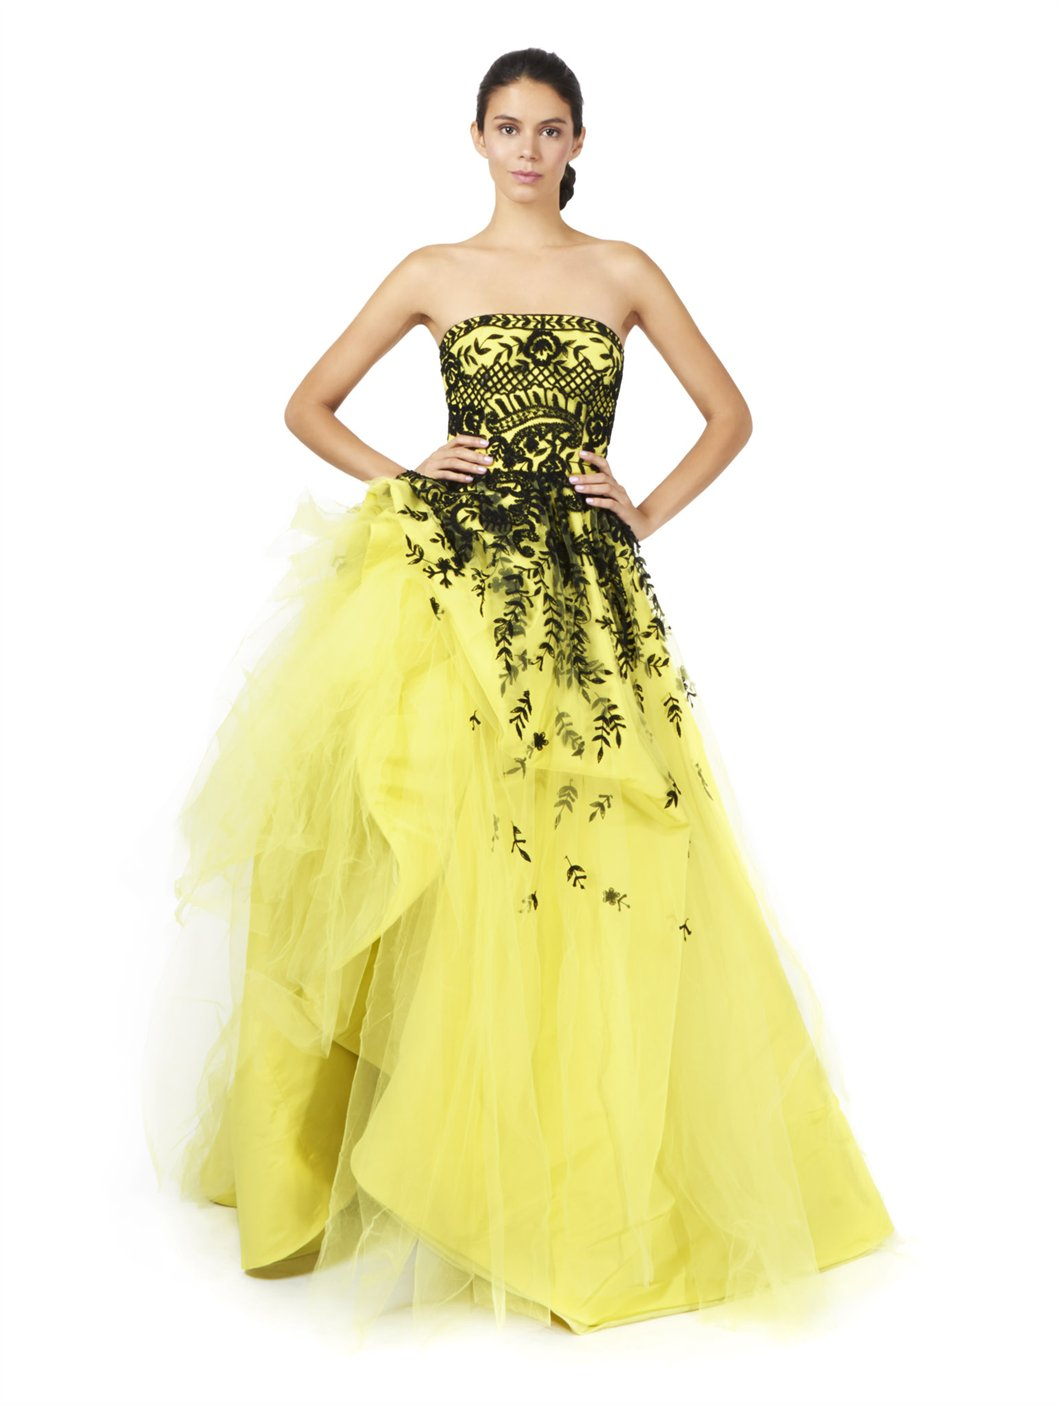 lyst oscar de la renta strapless embroidered ball gown in yellow. Black Bedroom Furniture Sets. Home Design Ideas